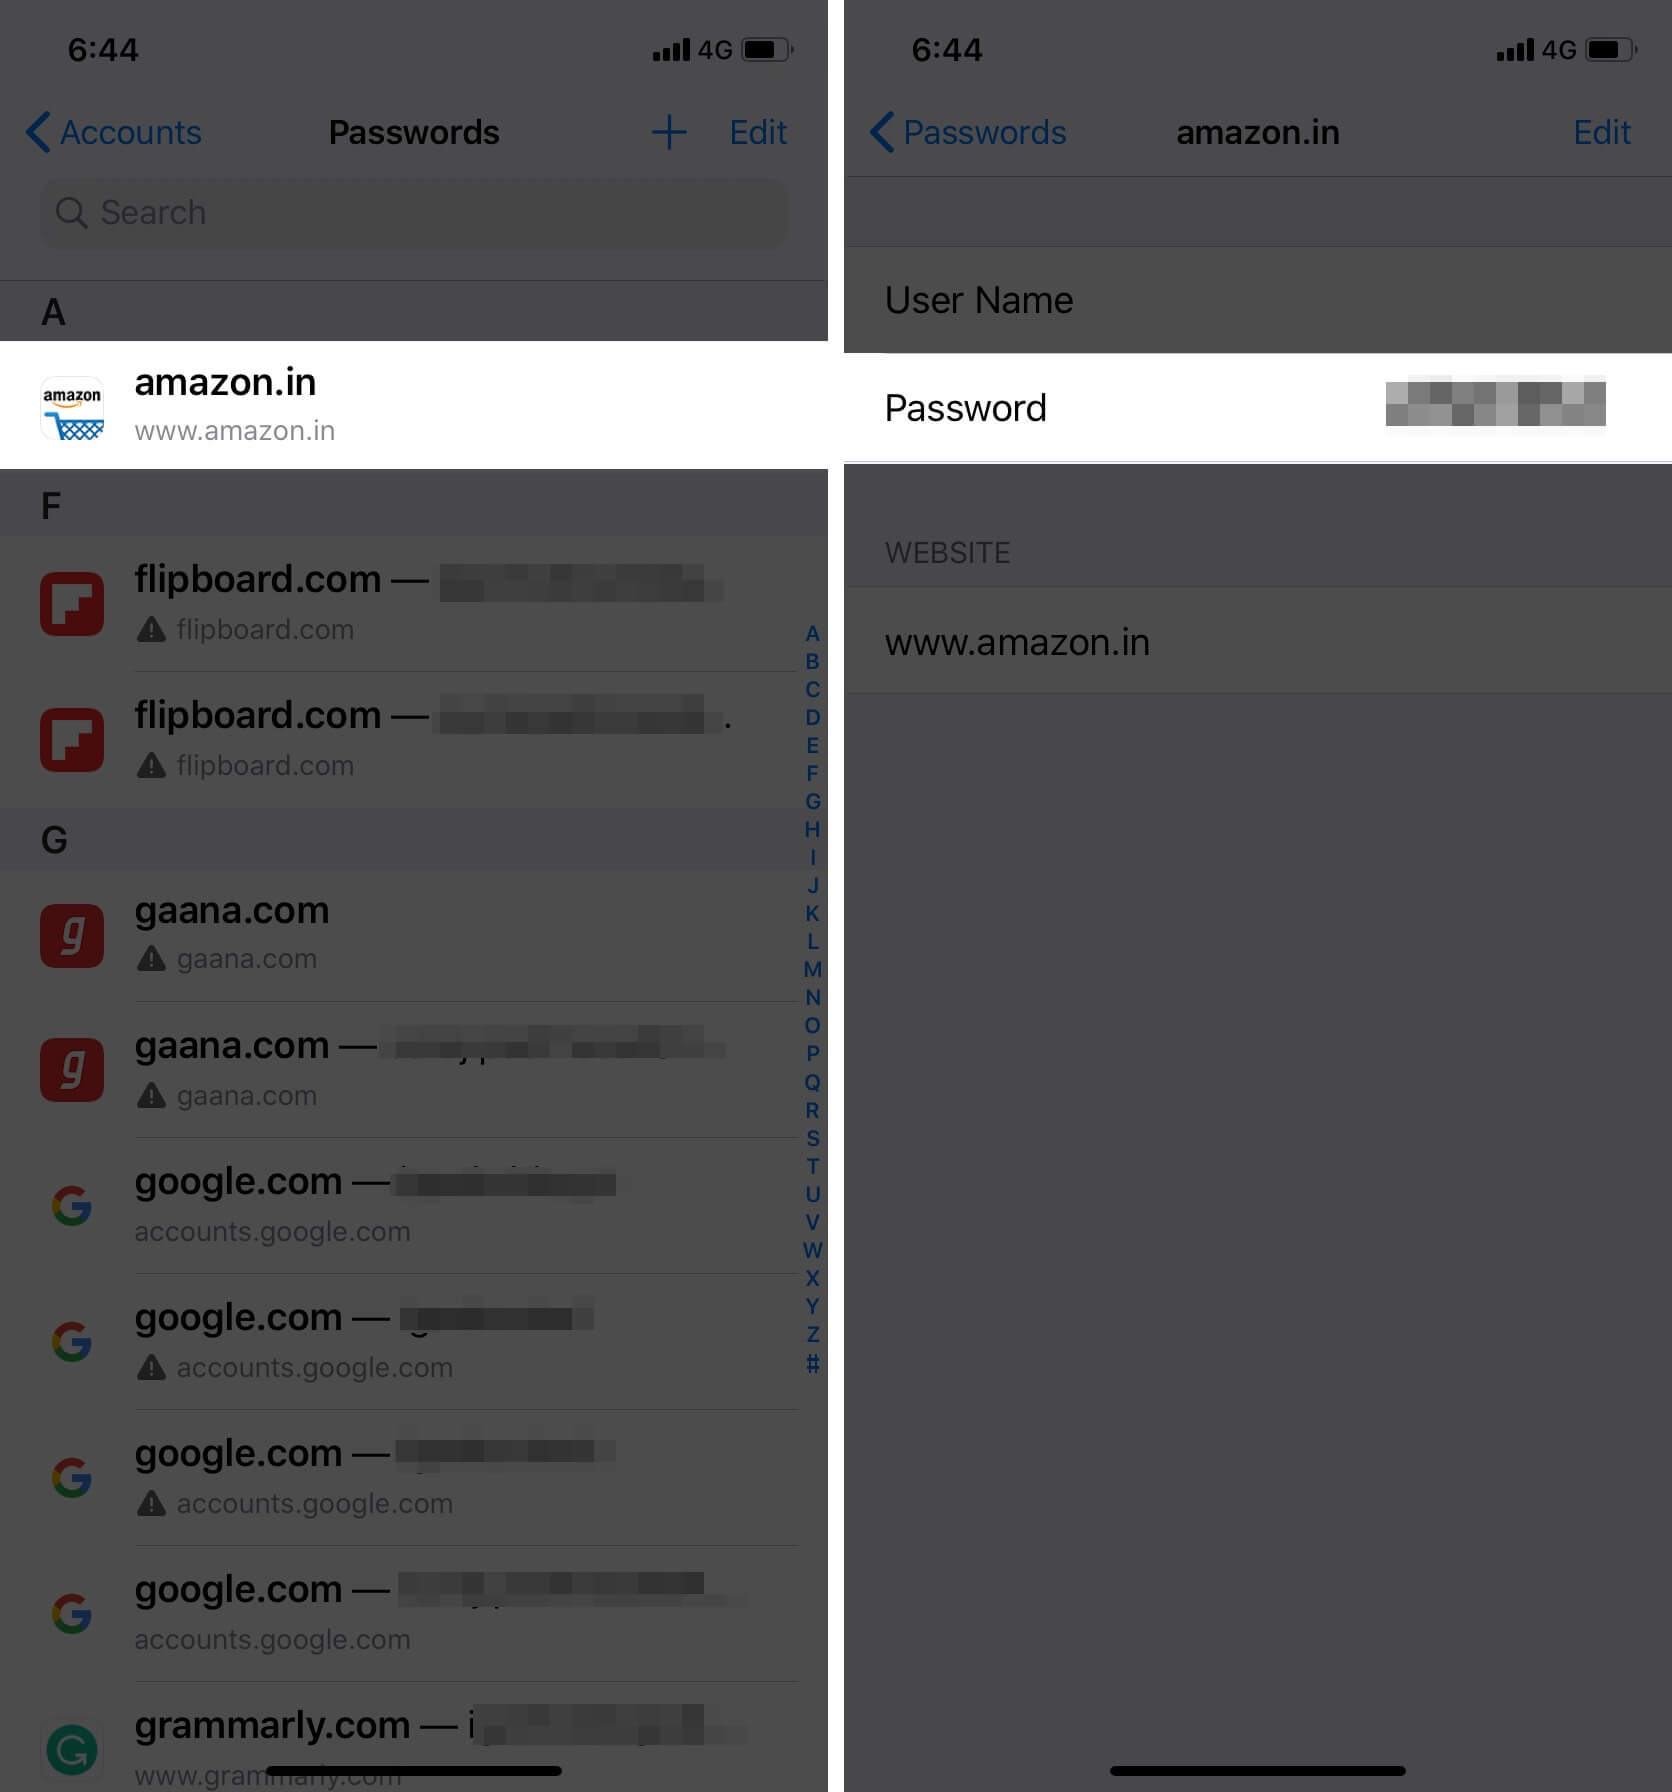 View Saved Passwords in Safari on iPhone